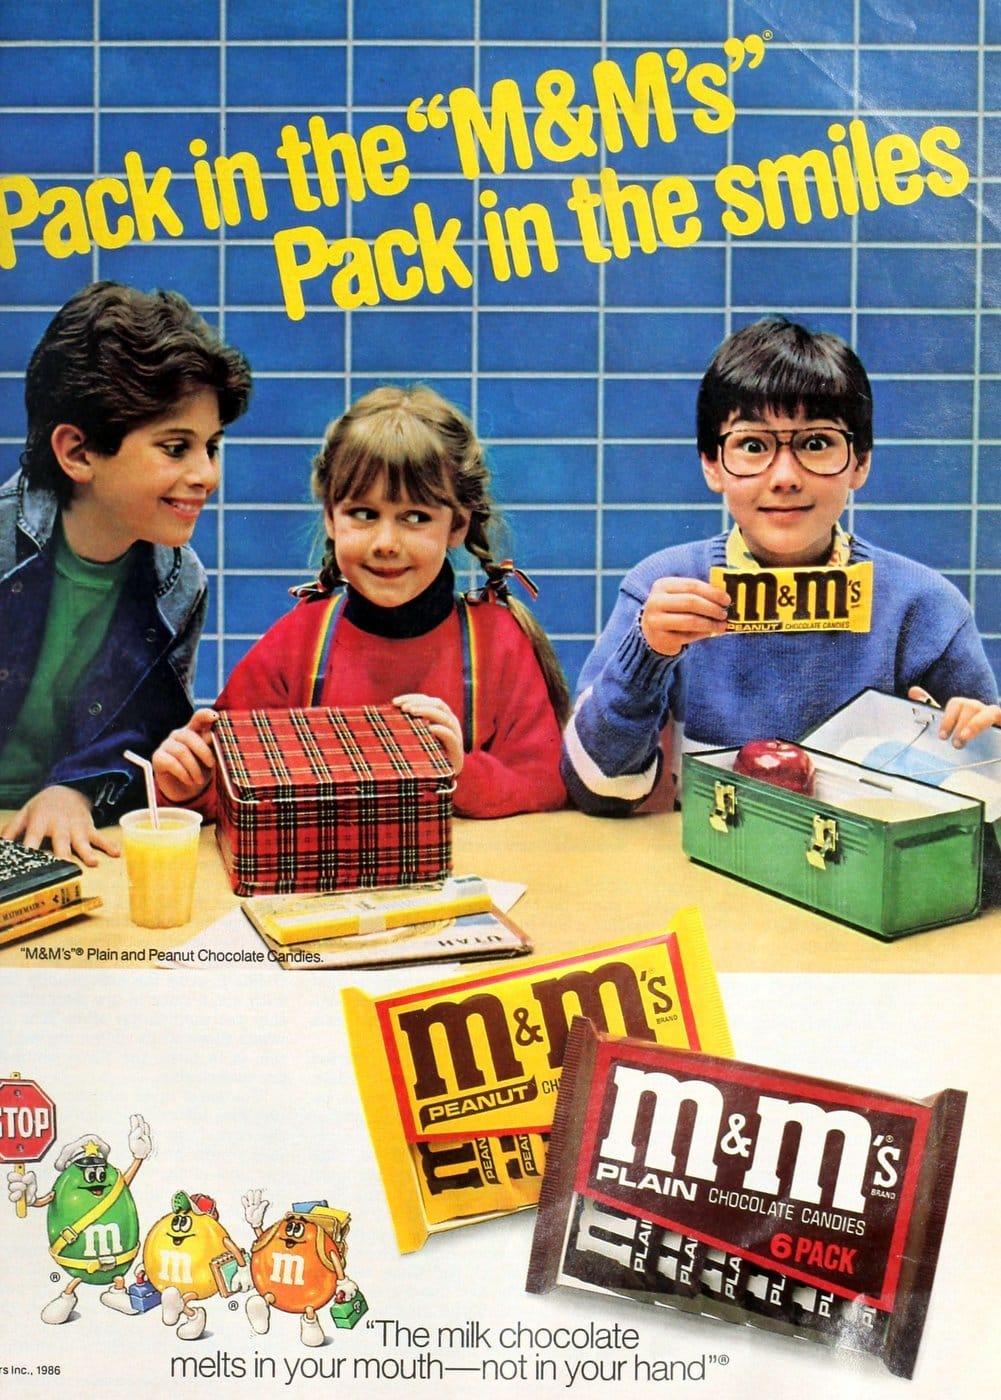 Vintage ad for mms candy at school (1986)